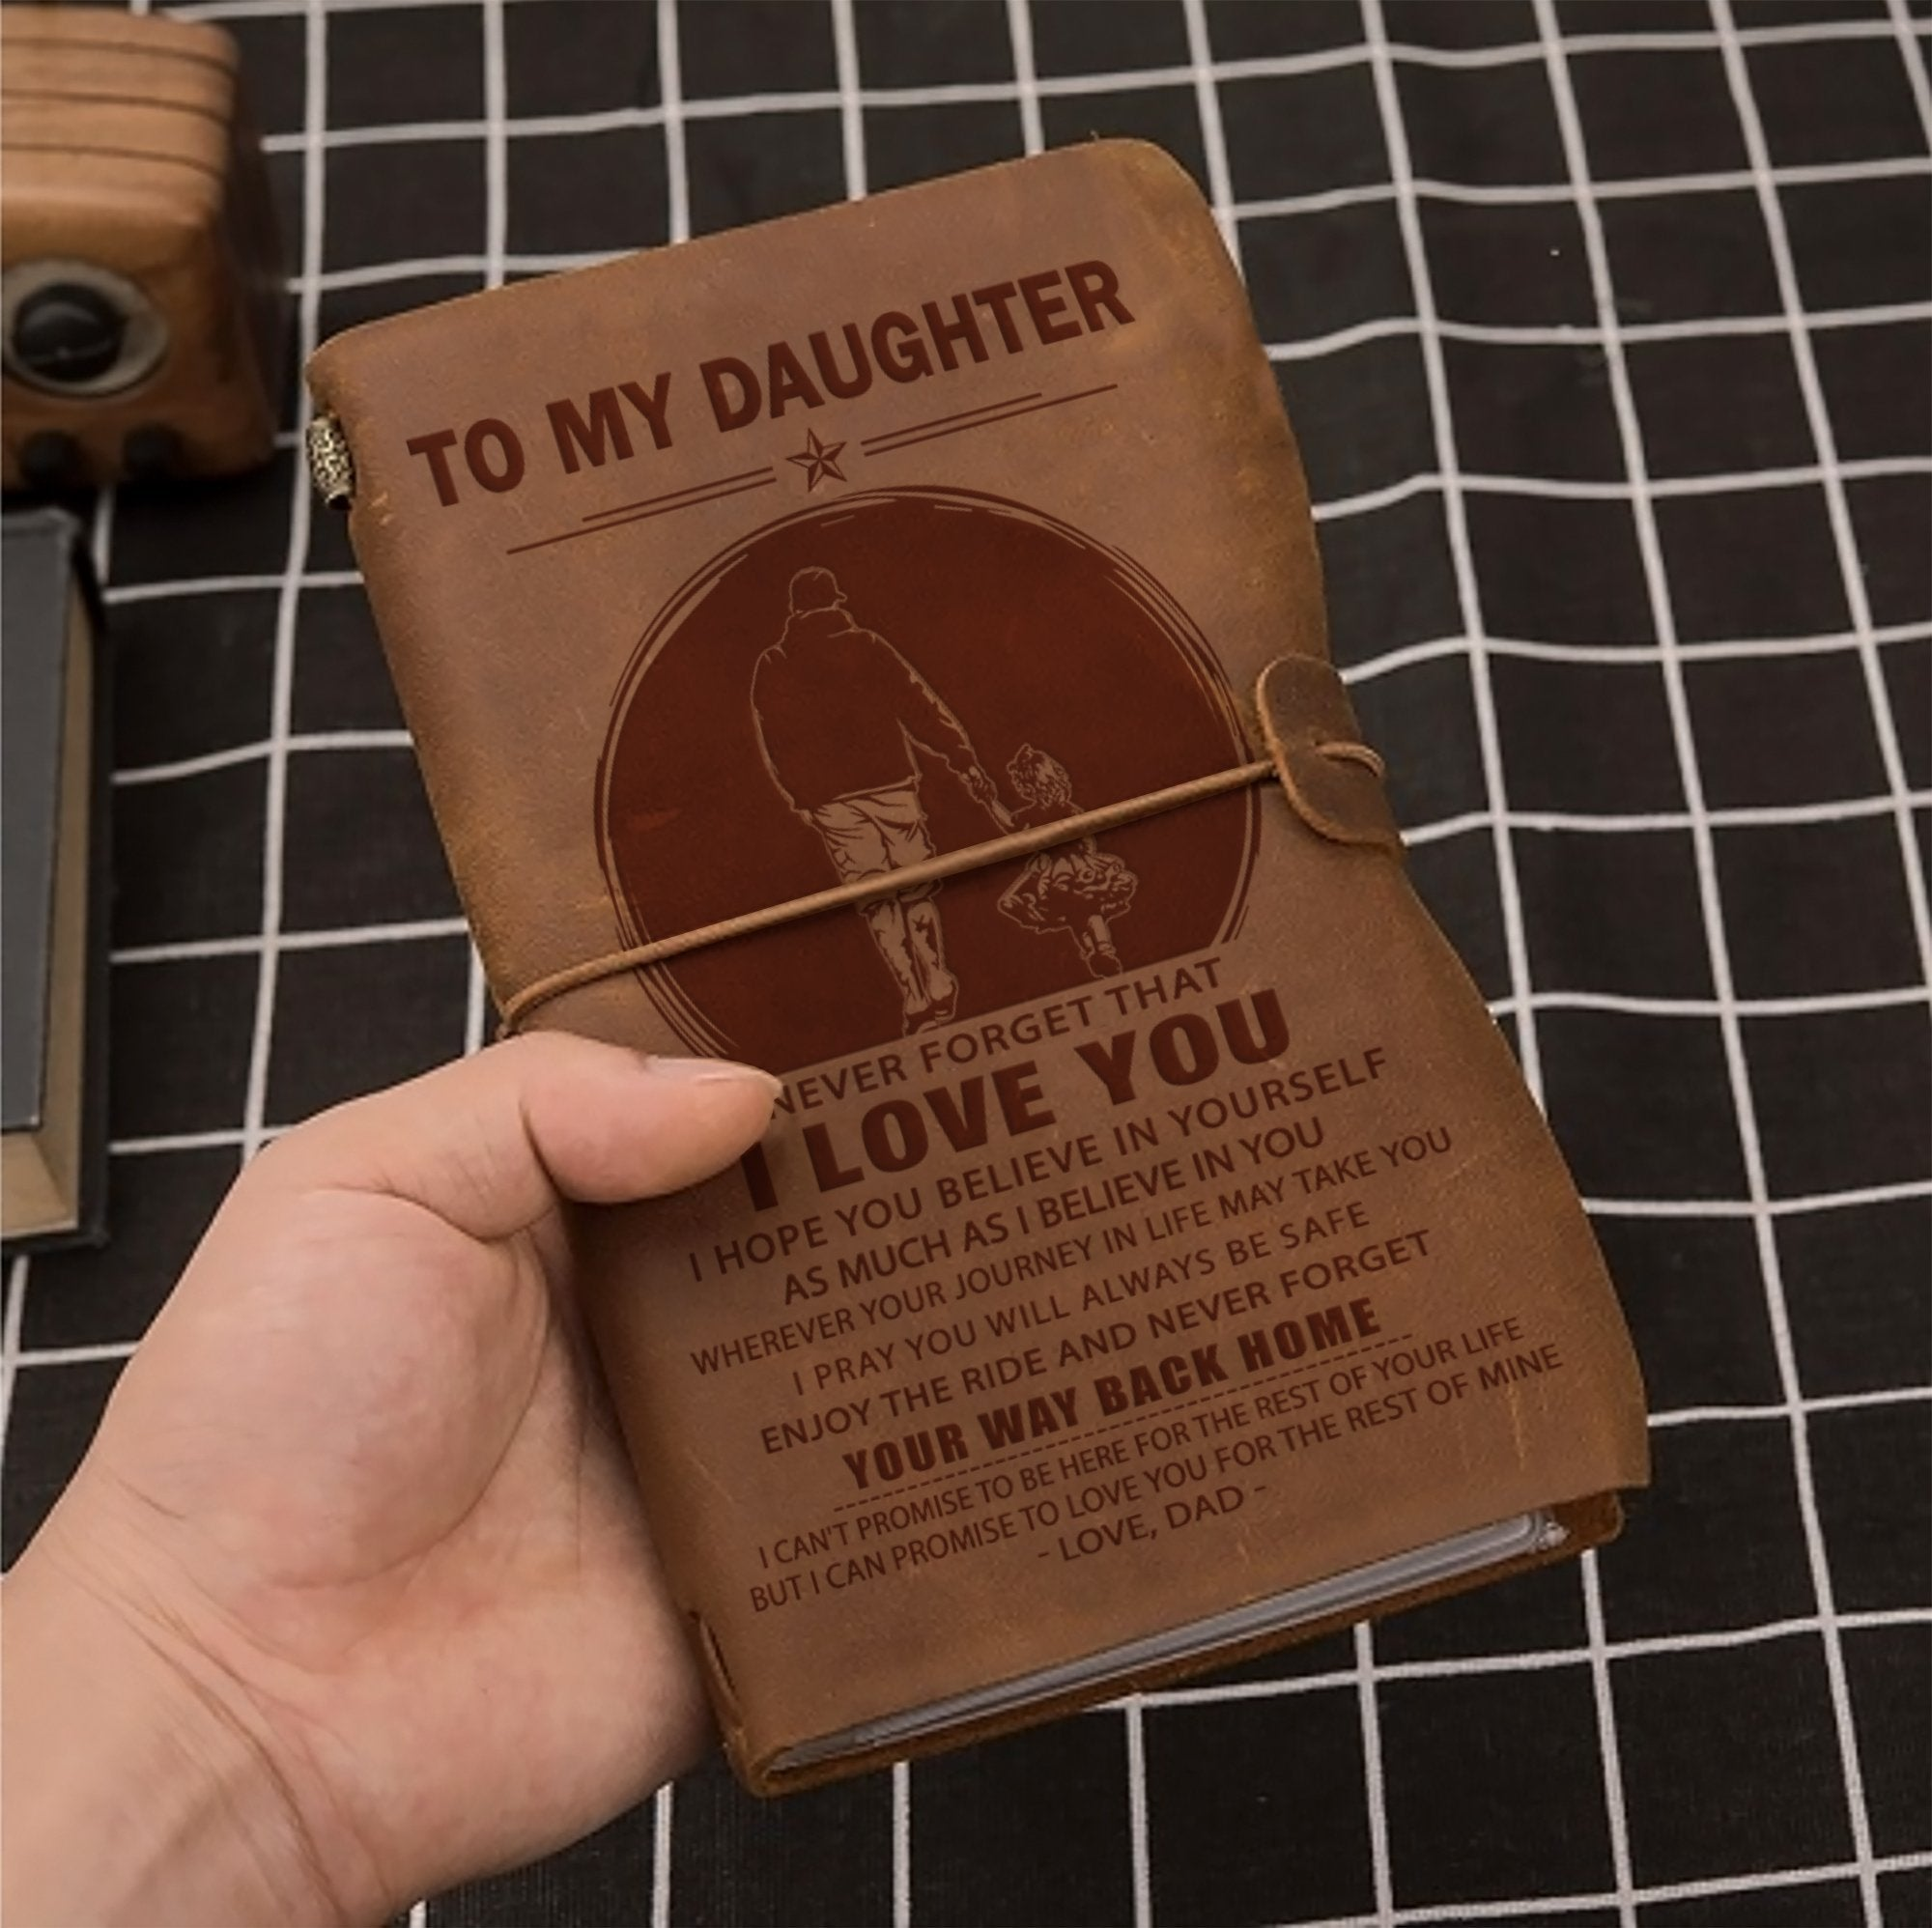 (JT14) FAMILY VINTAGE JOURNAL - DAD TO DAUGHTER - YOUR WAY BACK HOME